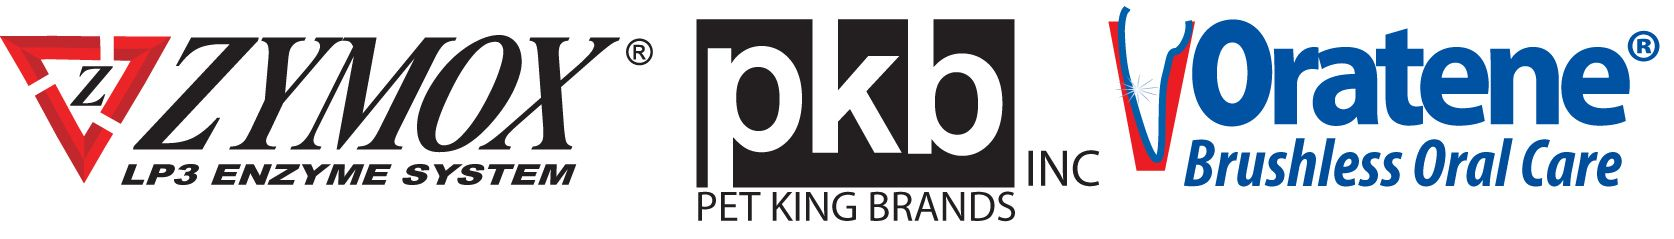 Pet King Brands, Inc Logo